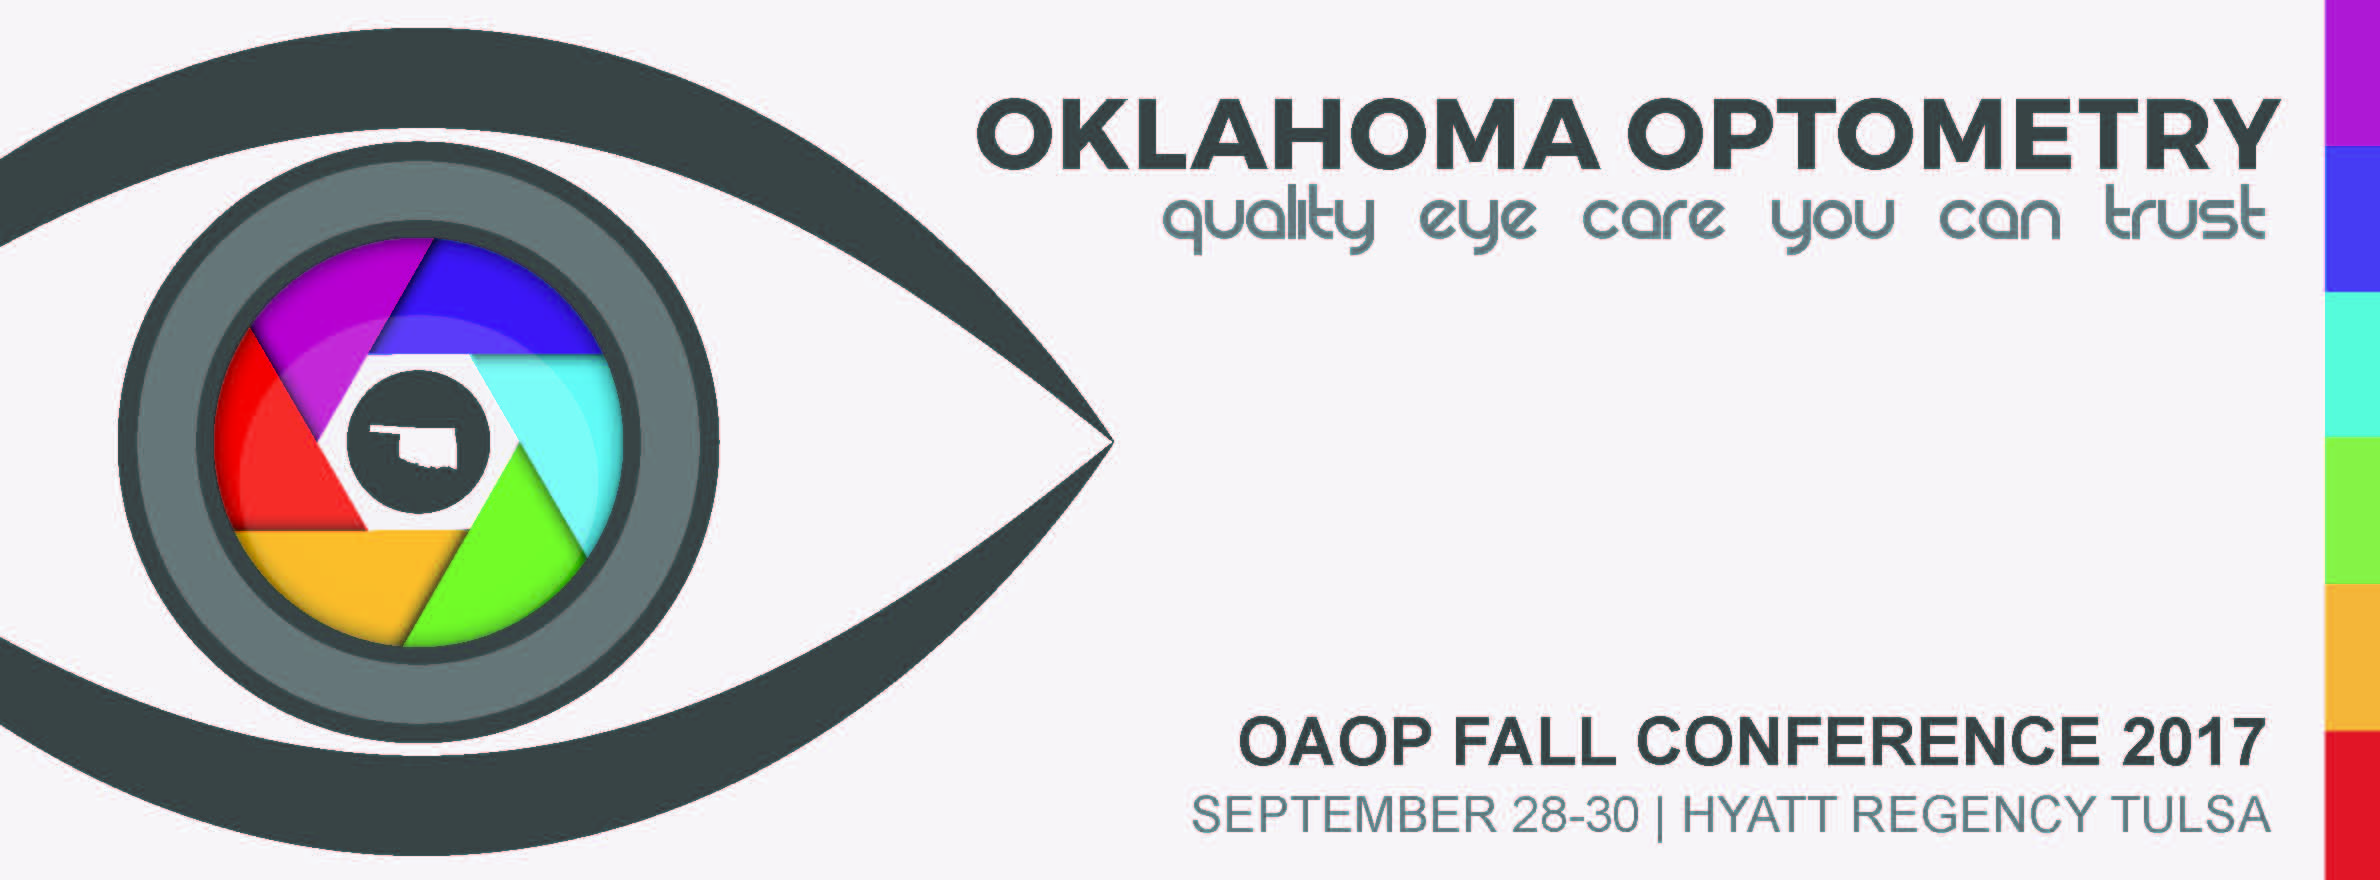 OAOP Fall Conference 2017